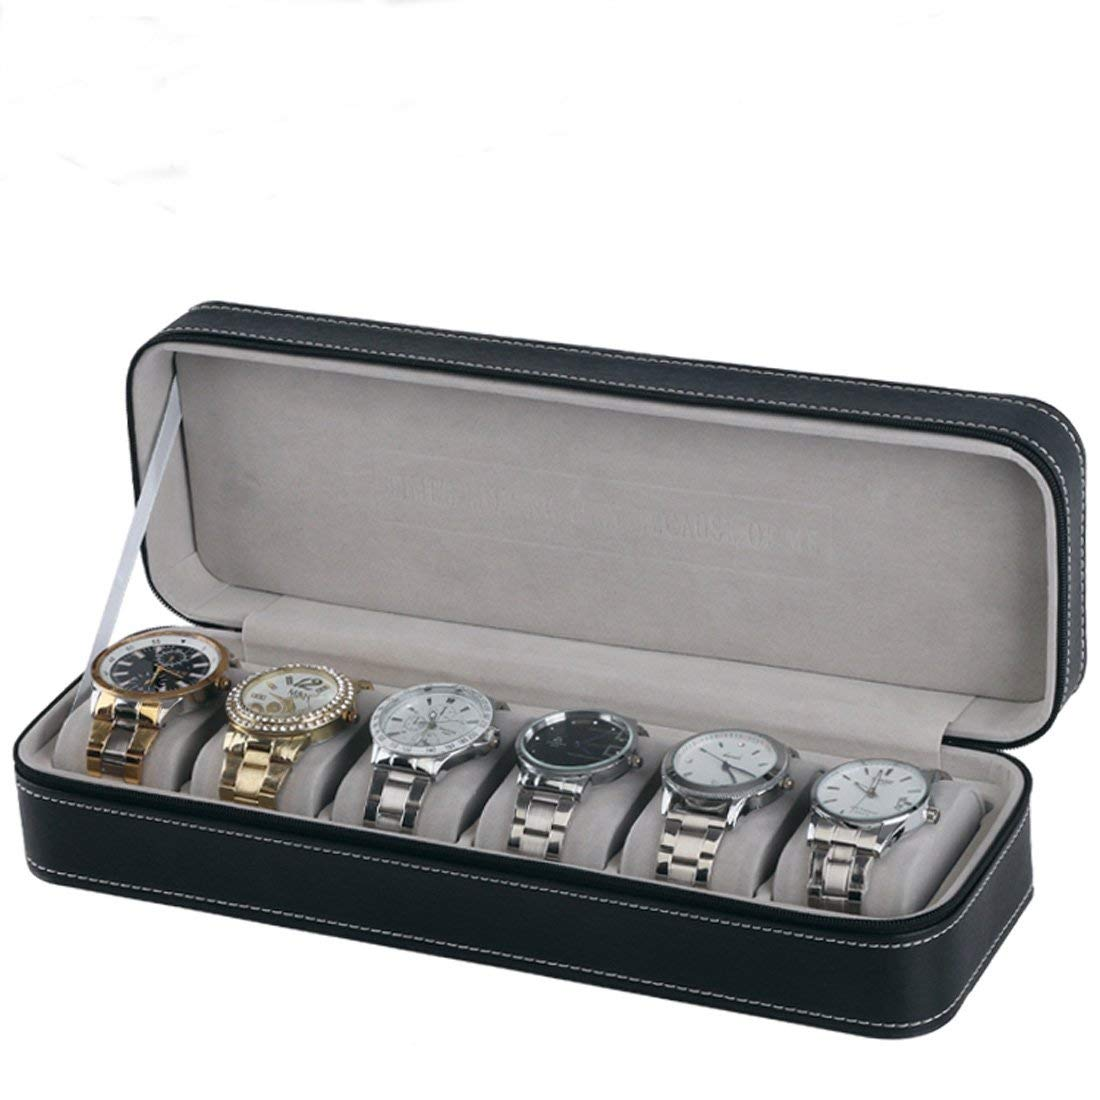 Buy 6 Slot Watch Box Portable Travel Zipper Case Collector Storage Jewelry Storage Box(Black) for only 16.88 USD